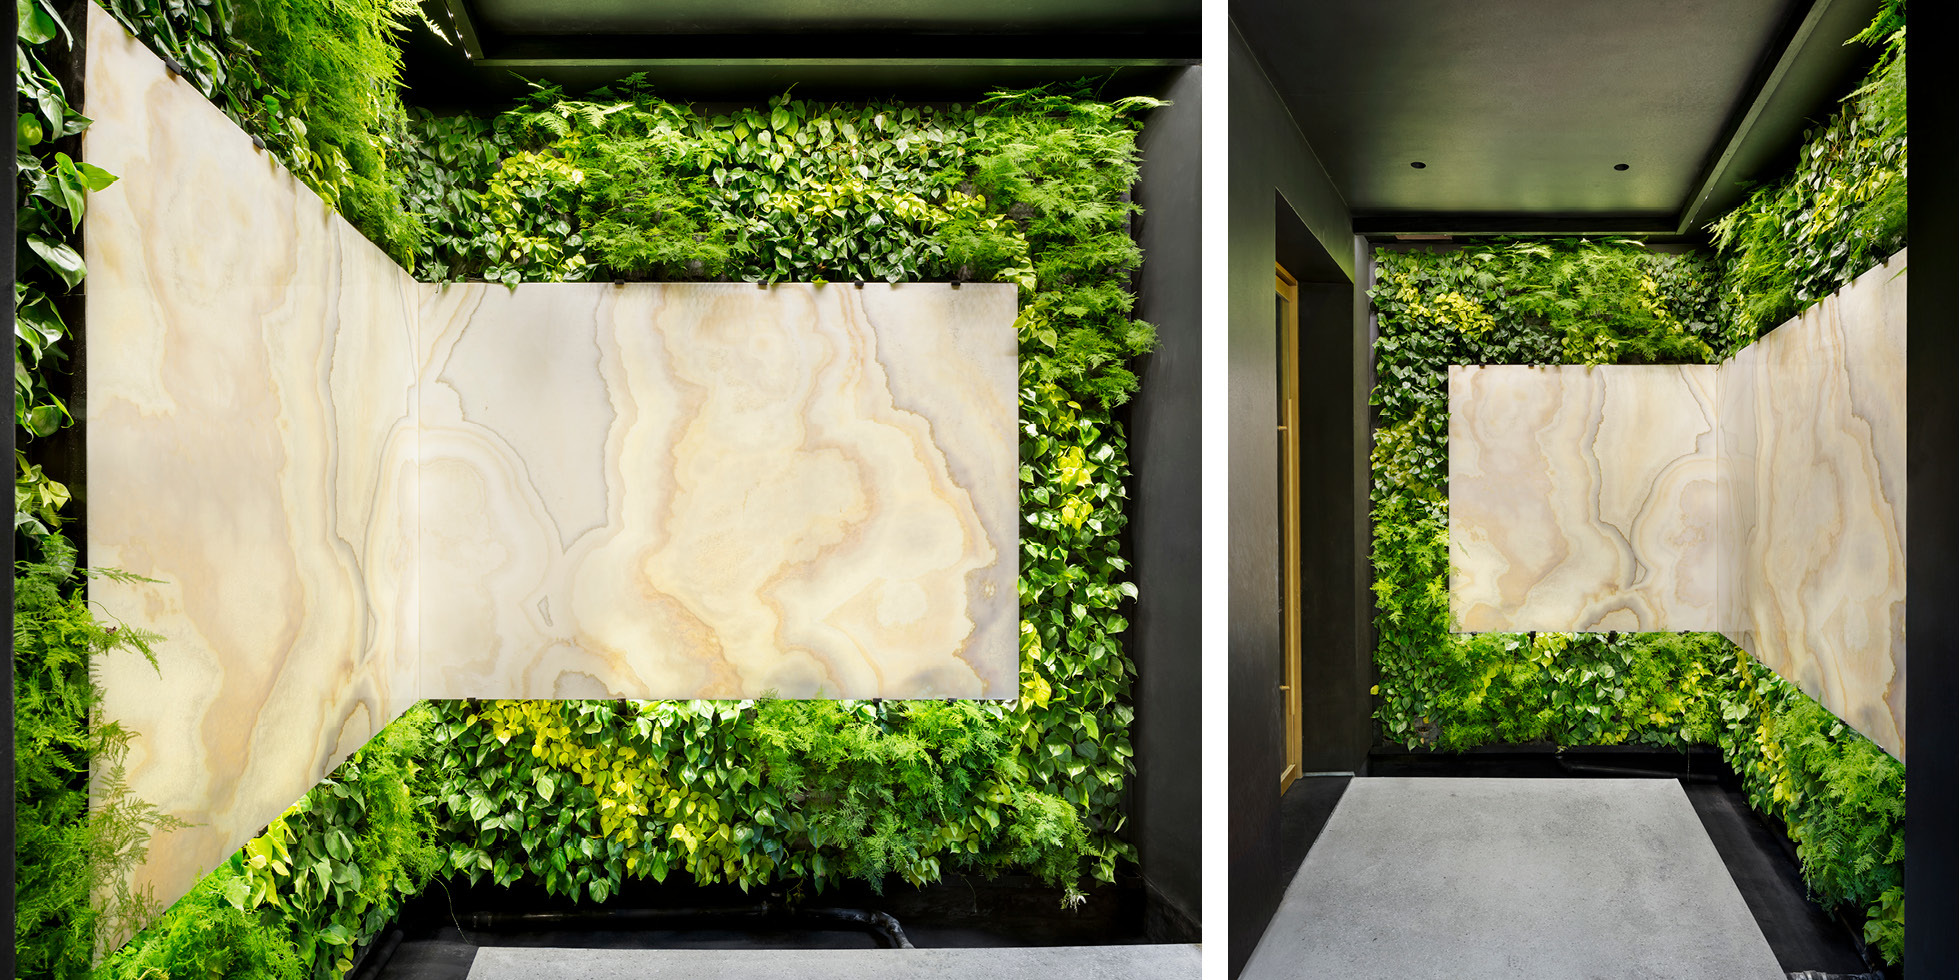 Los Angeles Residence Living Wall by Habitat Horticulture - View 3